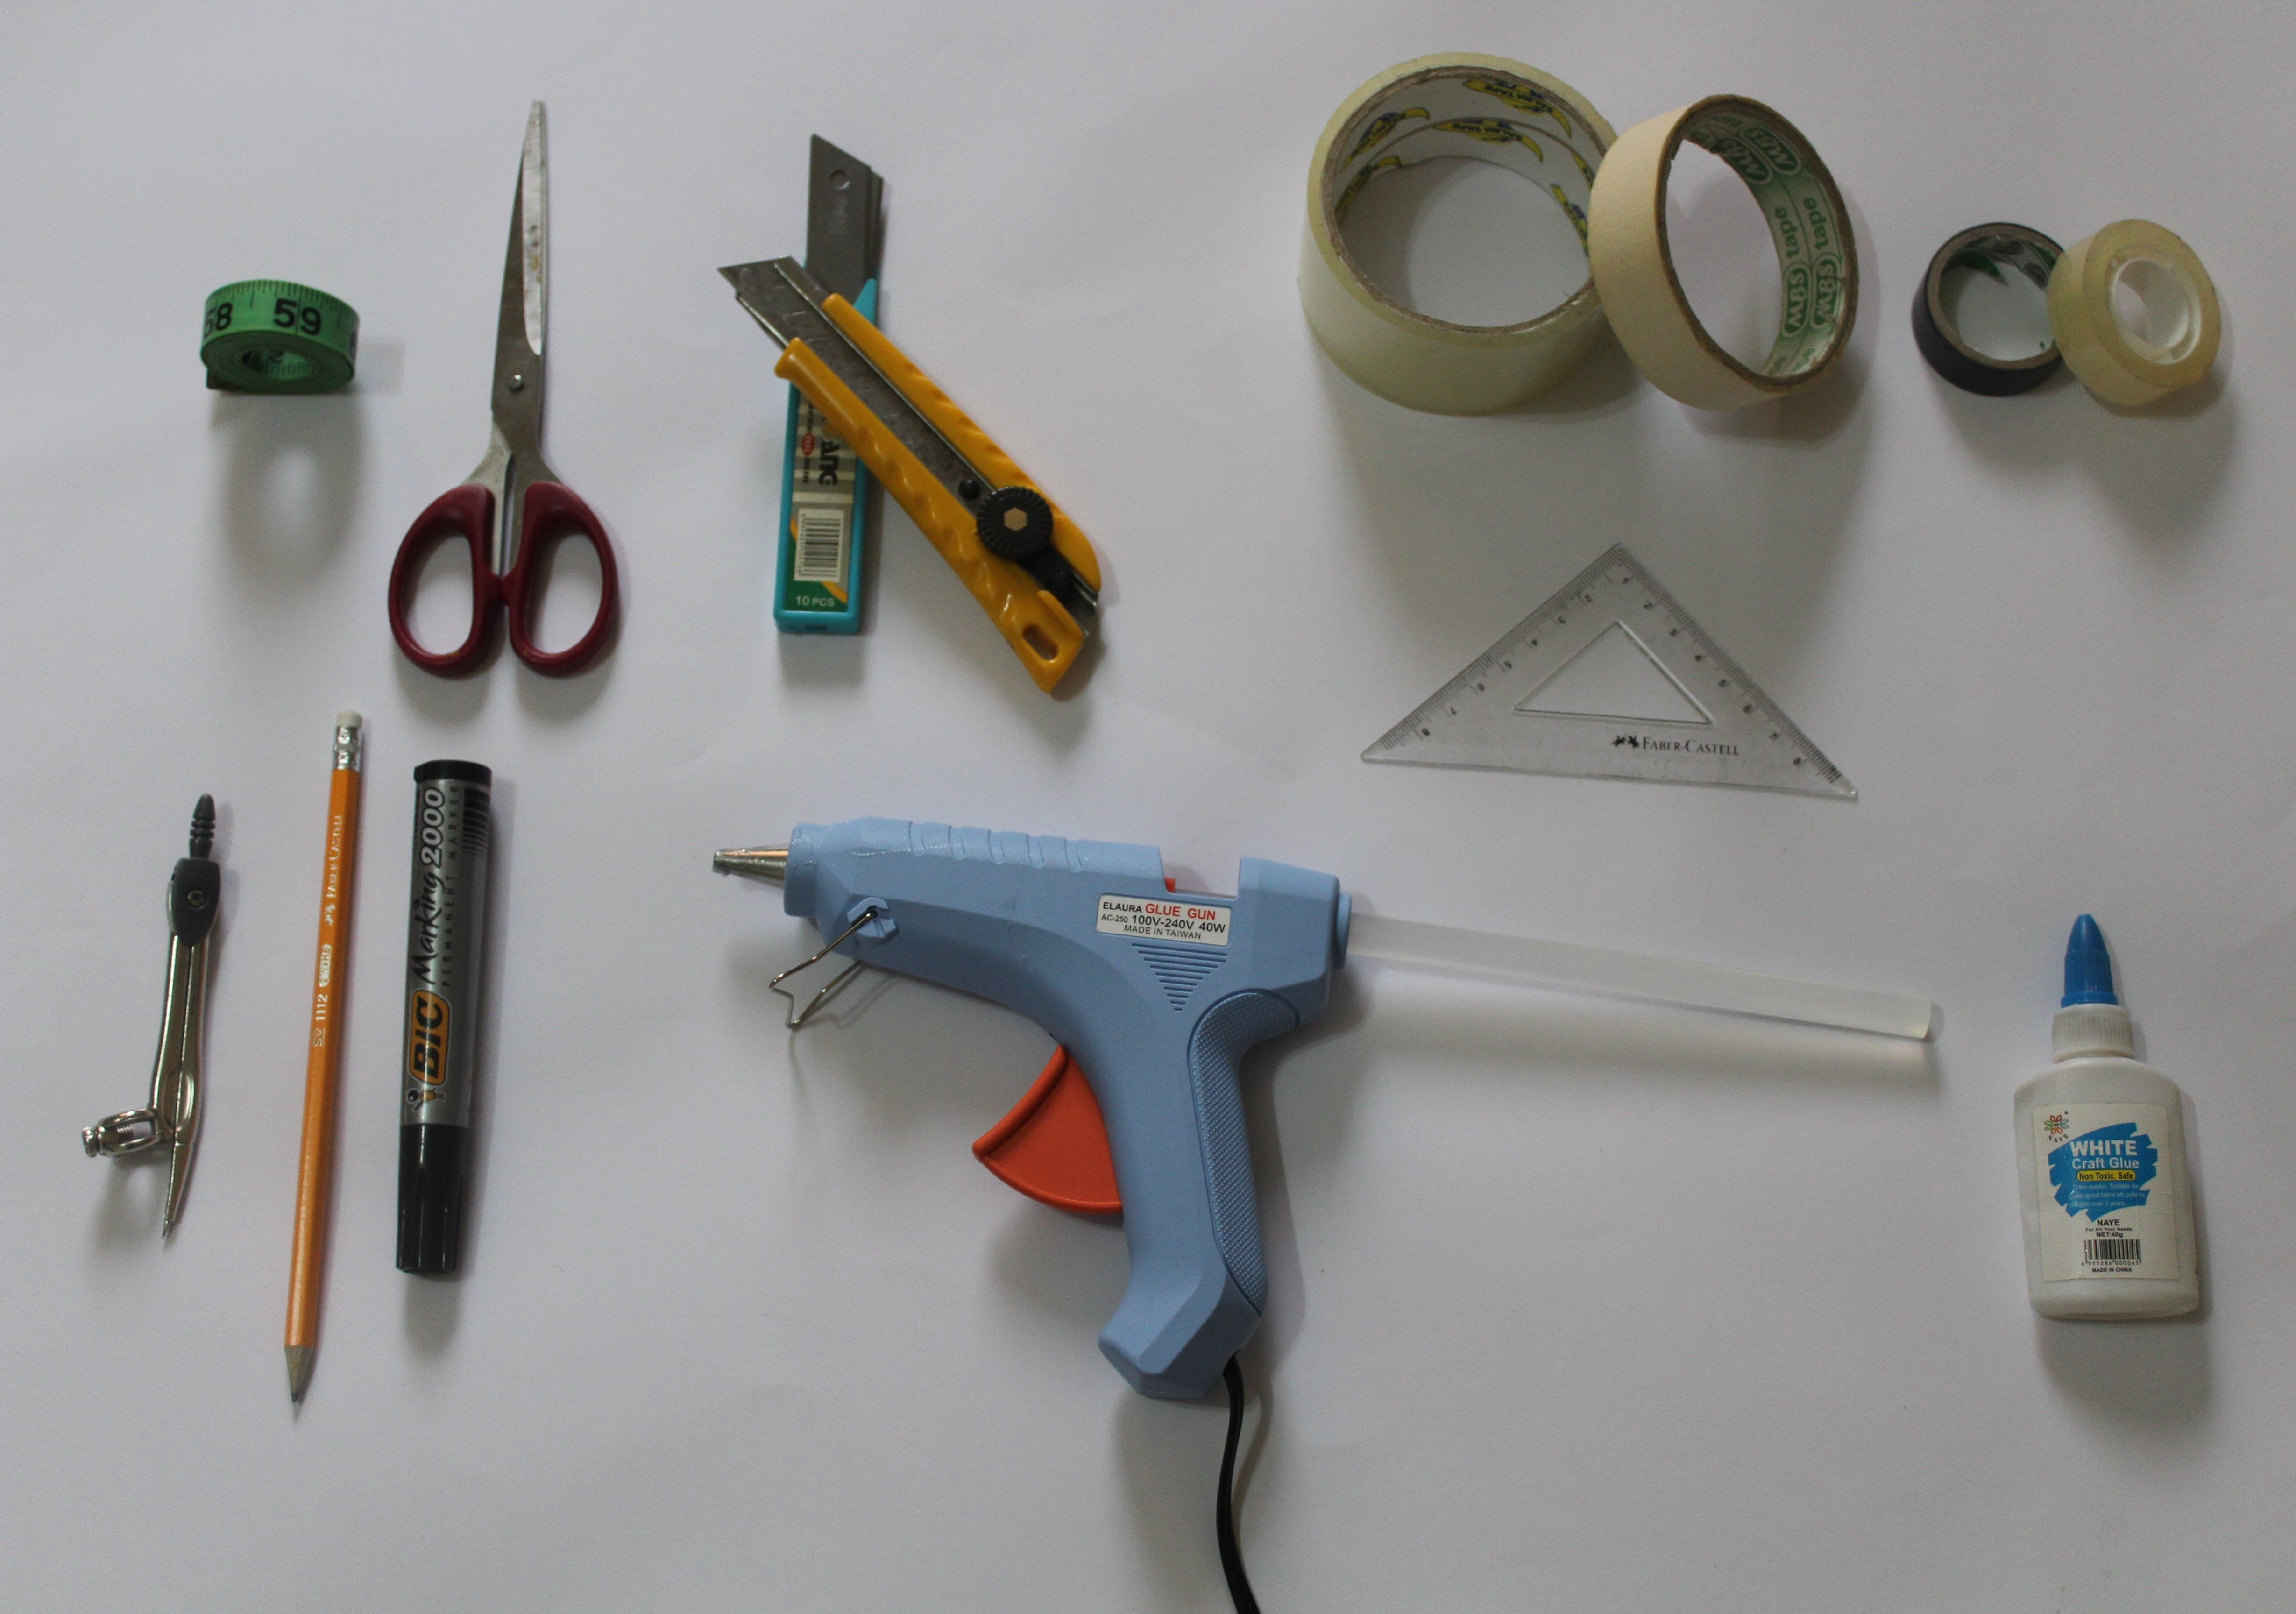 Picture of Materials and Tools Needed